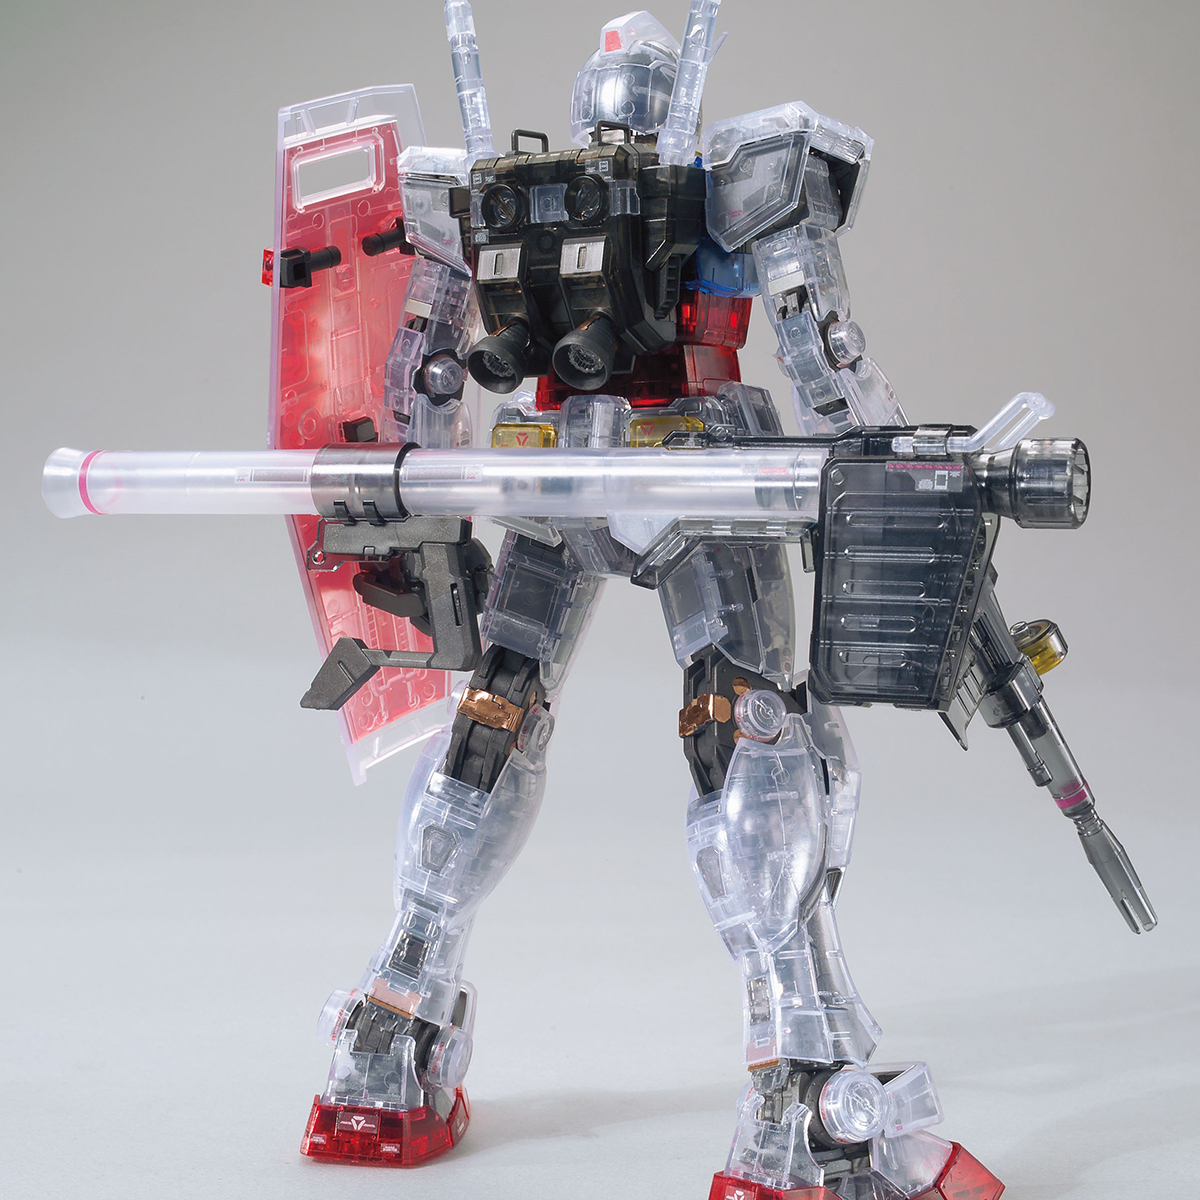 MG 1/100 THE GUNDAM BASE LIMITED RX-78-2 GUNDAM Ver.3.0 [CLEAR COLOR][Sep 2020 Delivery]